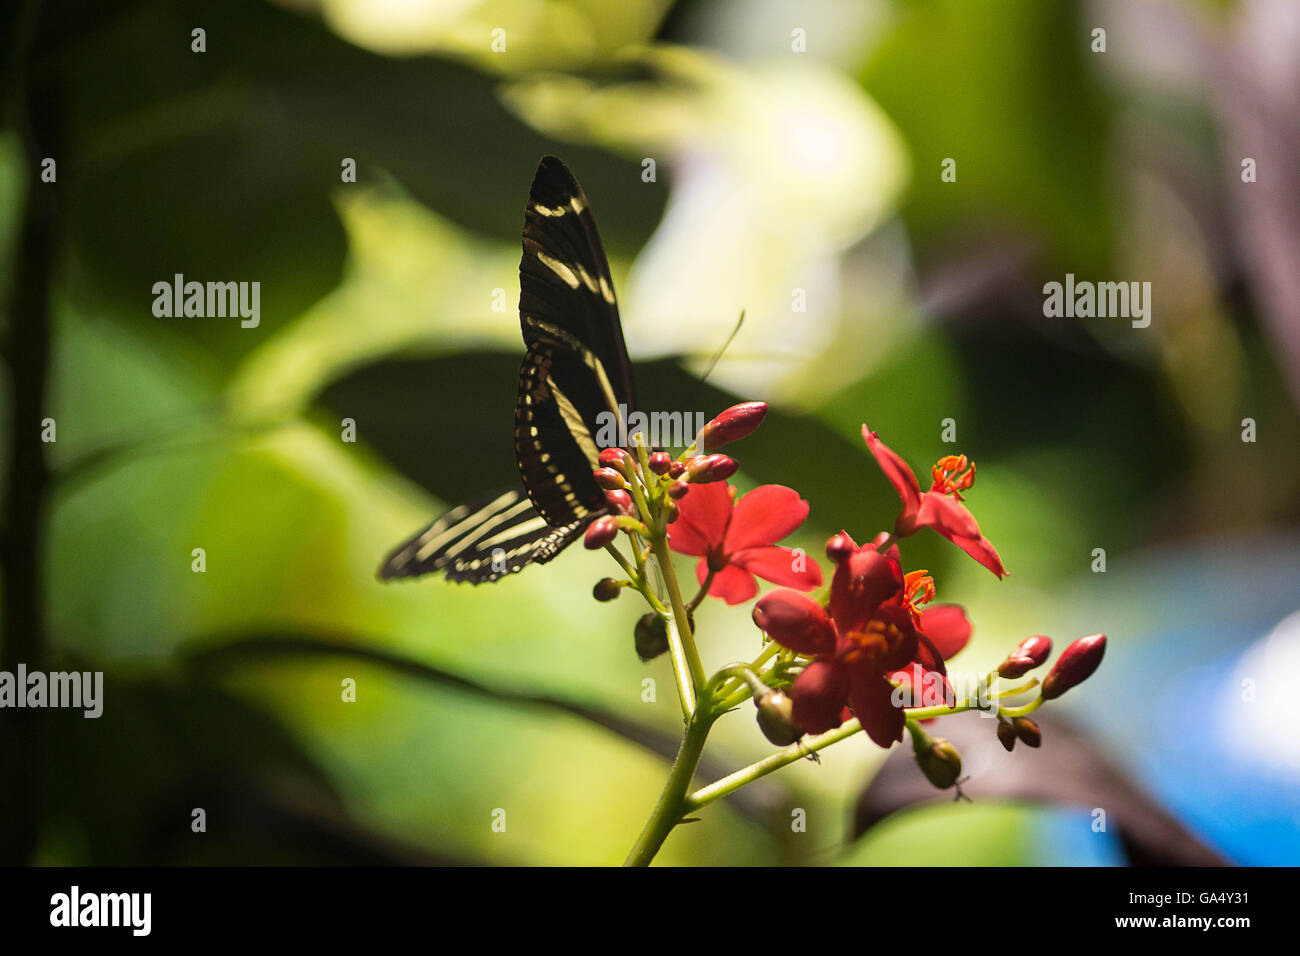 A yellow striped Zebra butterfly sits atop a leaf in a Butterfly exhibit at the Natural History Museum New York - Stock Image